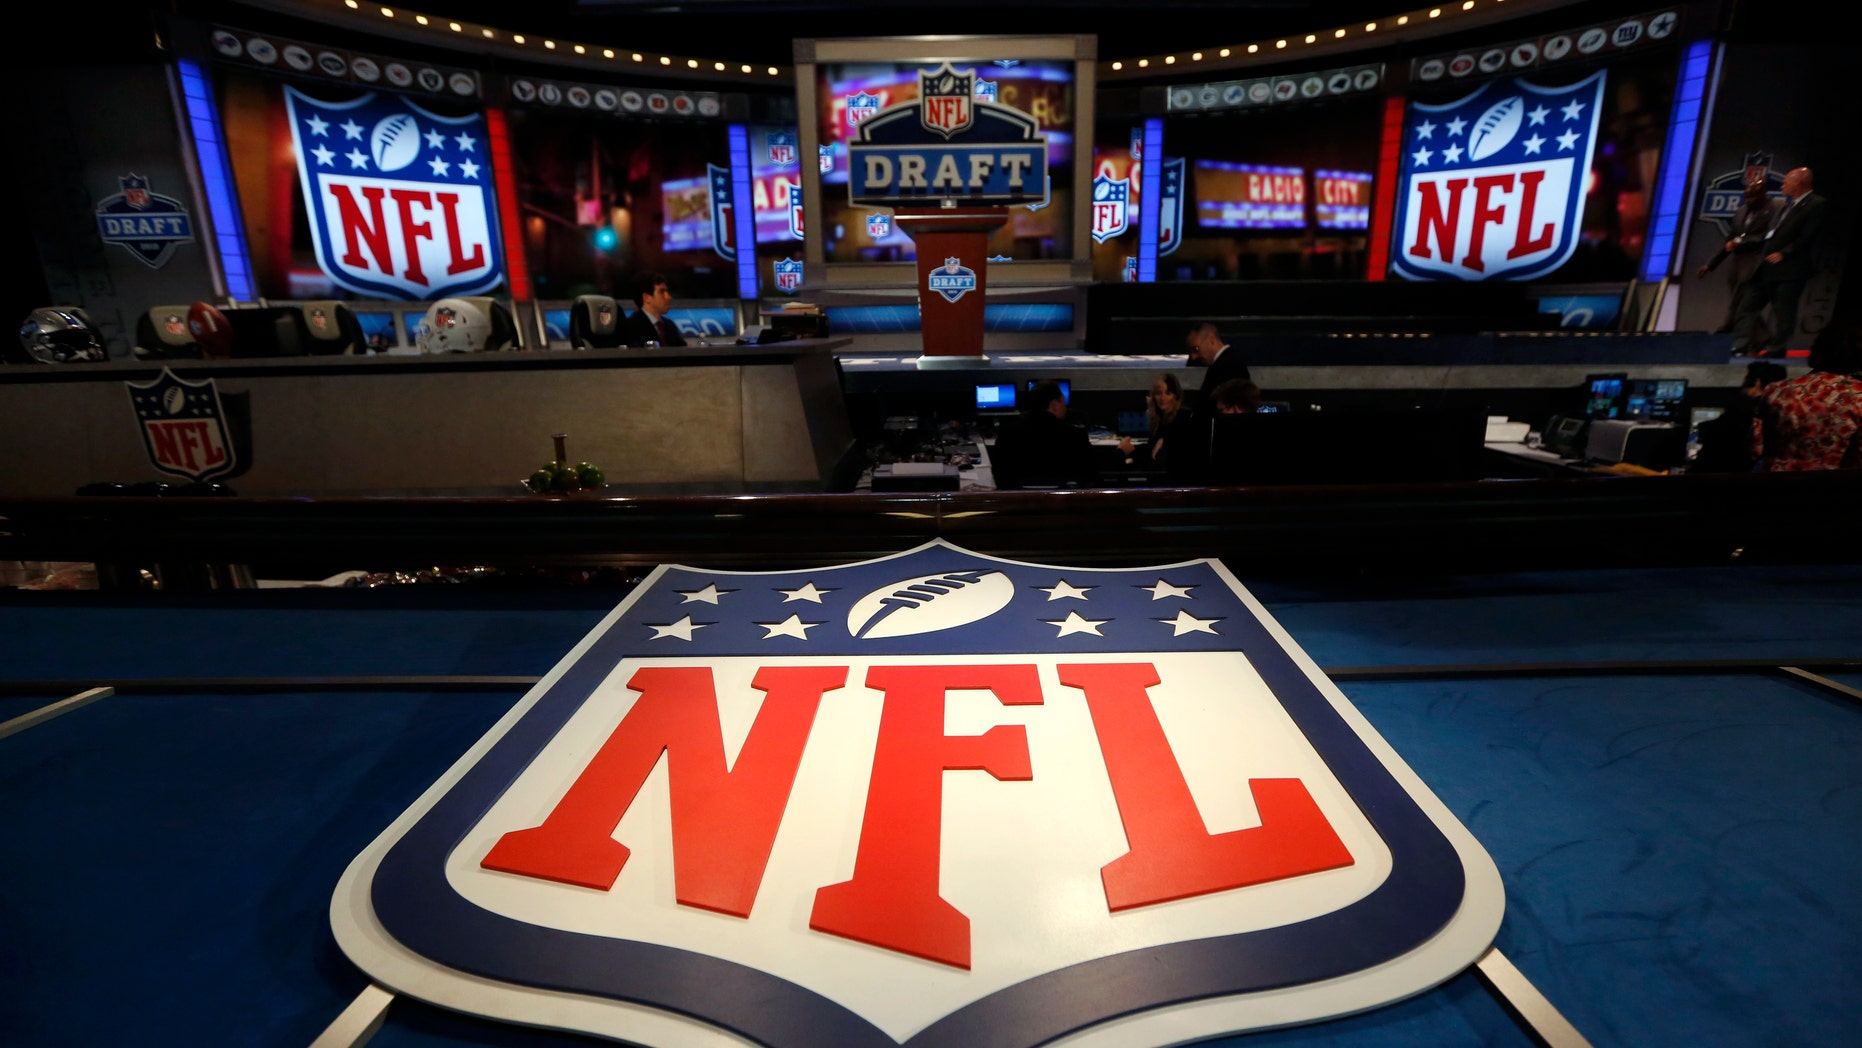 File photo - The NFL logo and set are seen at New York's Radio City Music Hall before the start of the 2013 NFL Draft April 25, 2013.